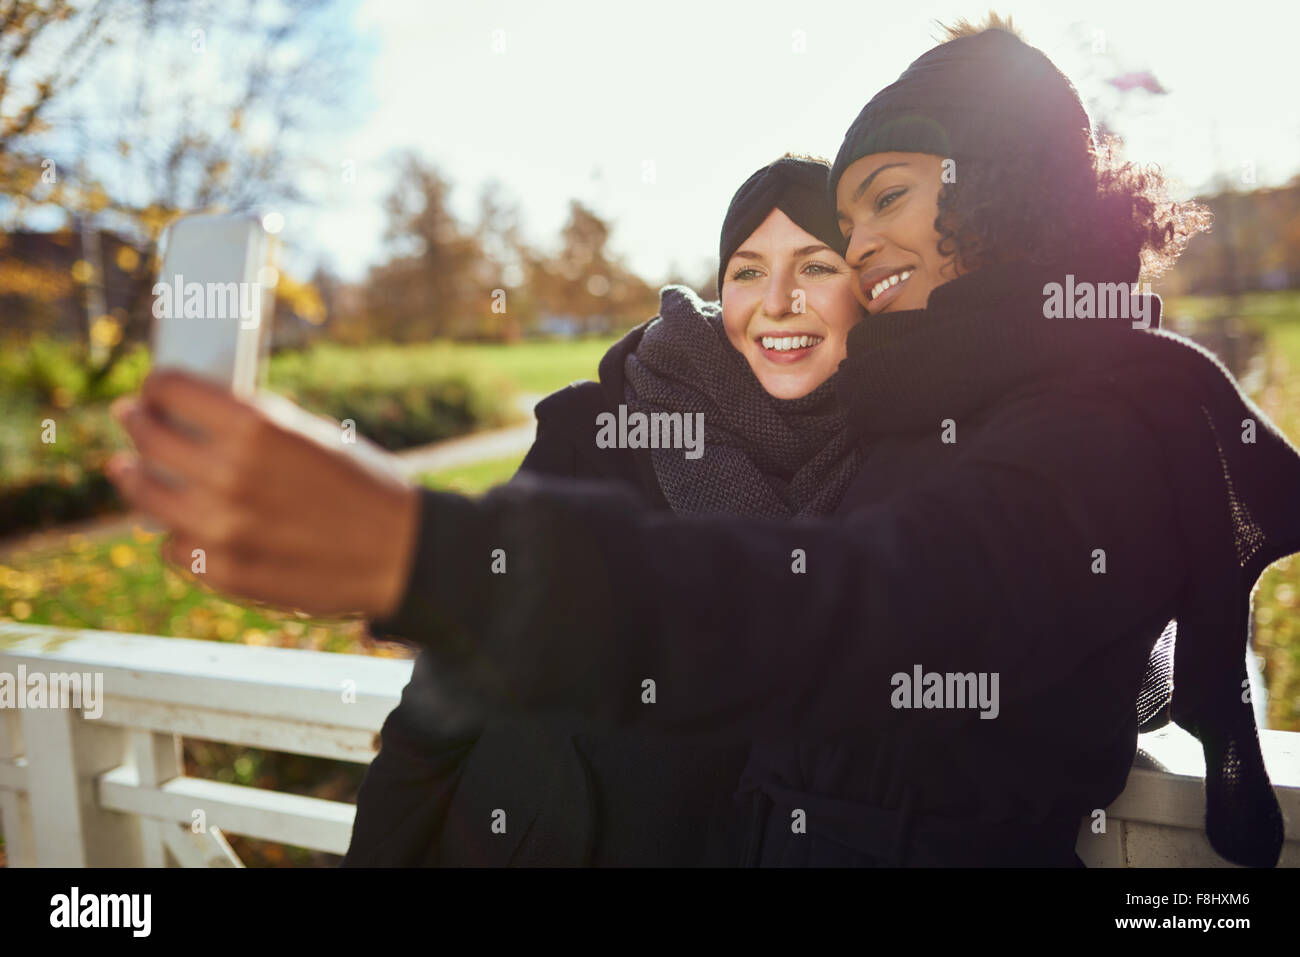 Two smiling young women in warm clothes taking selfie against of autumnal park - Stock Image